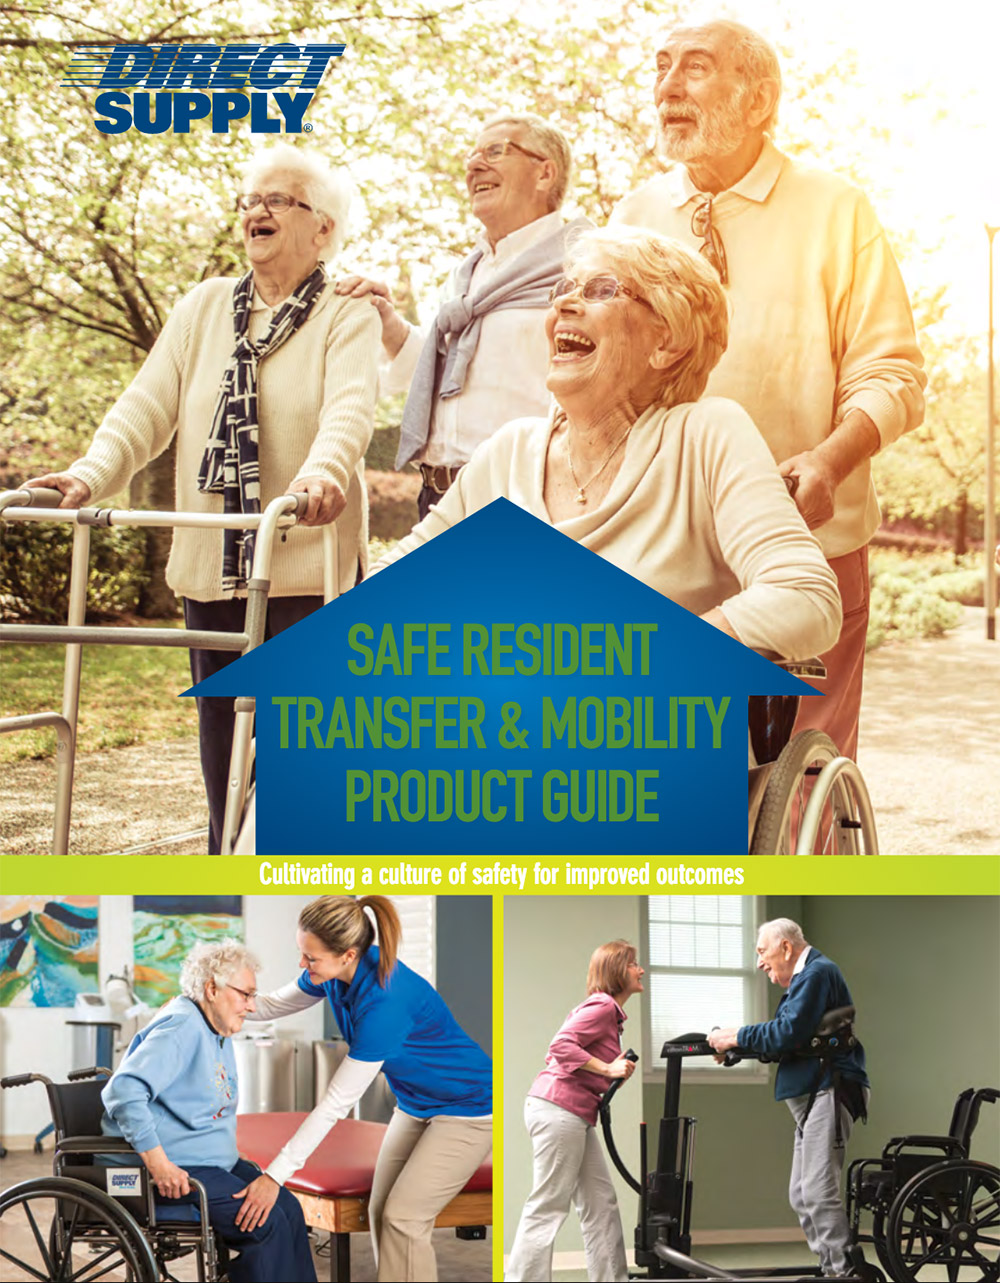 Safe resident transfer and mobility product guide